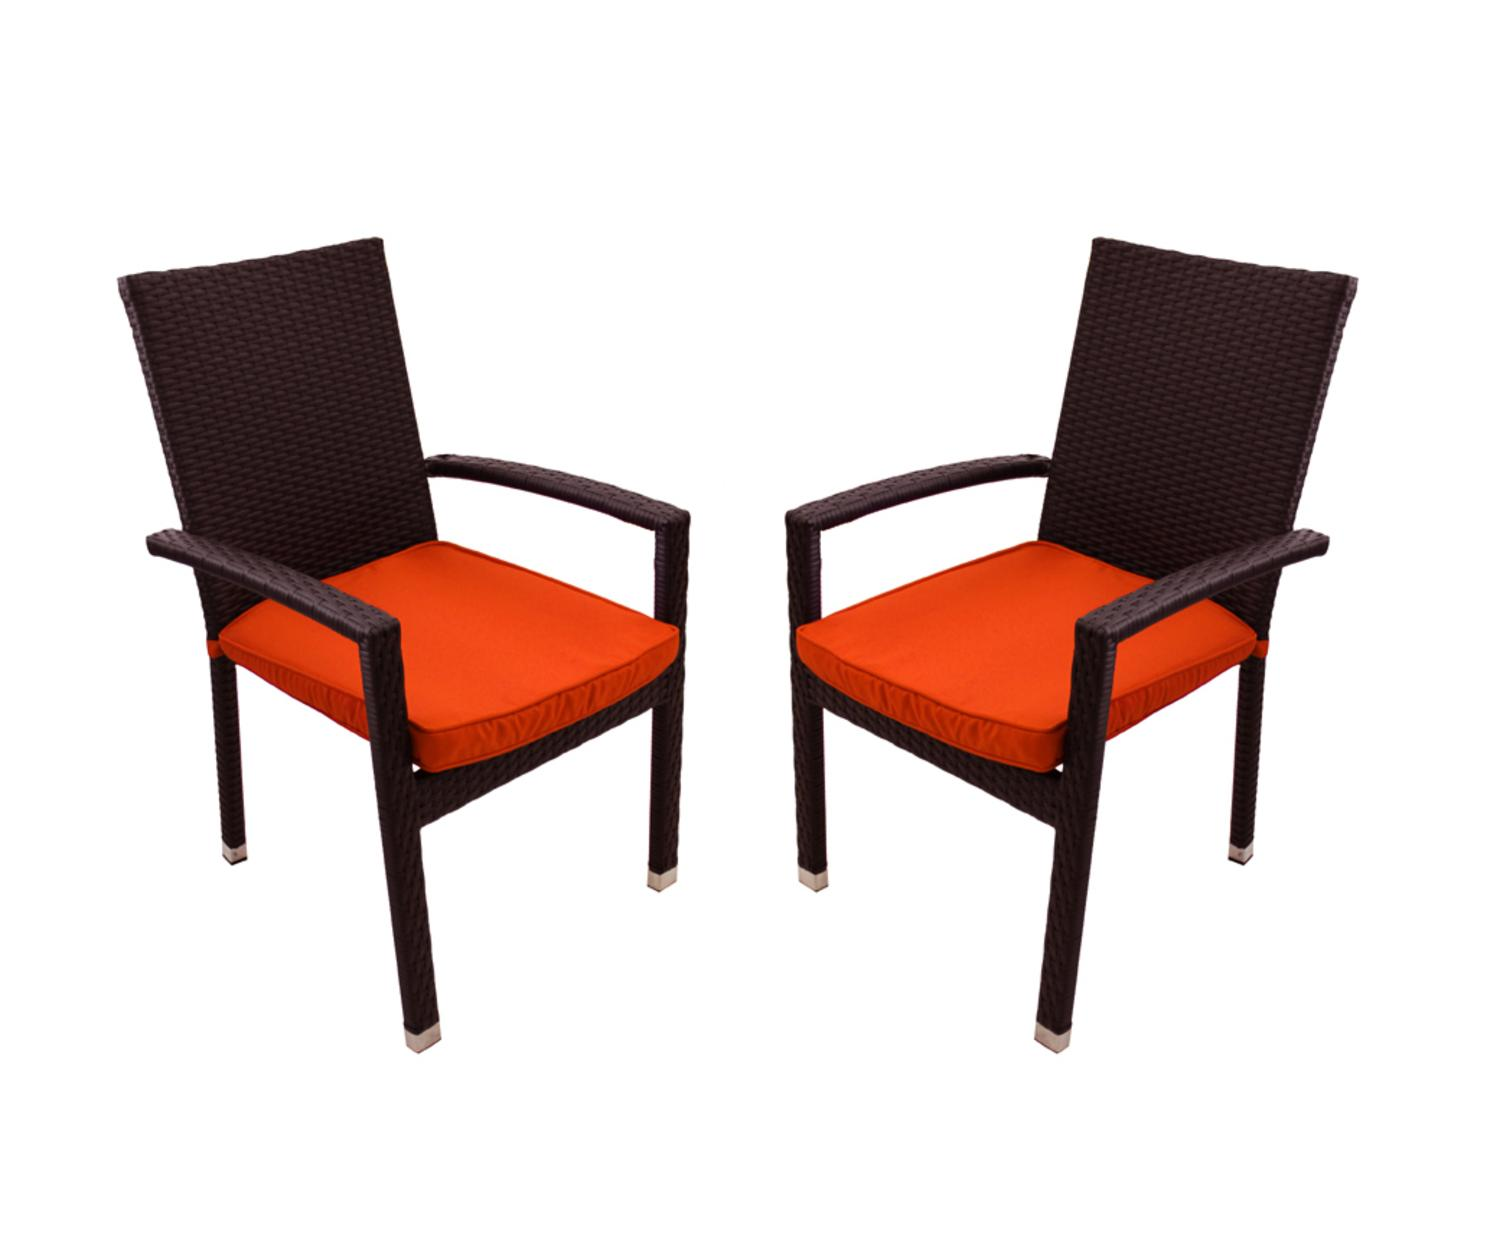 black patio chairs fishing chair platform set of 2 resin wicker outdoor furniture dining